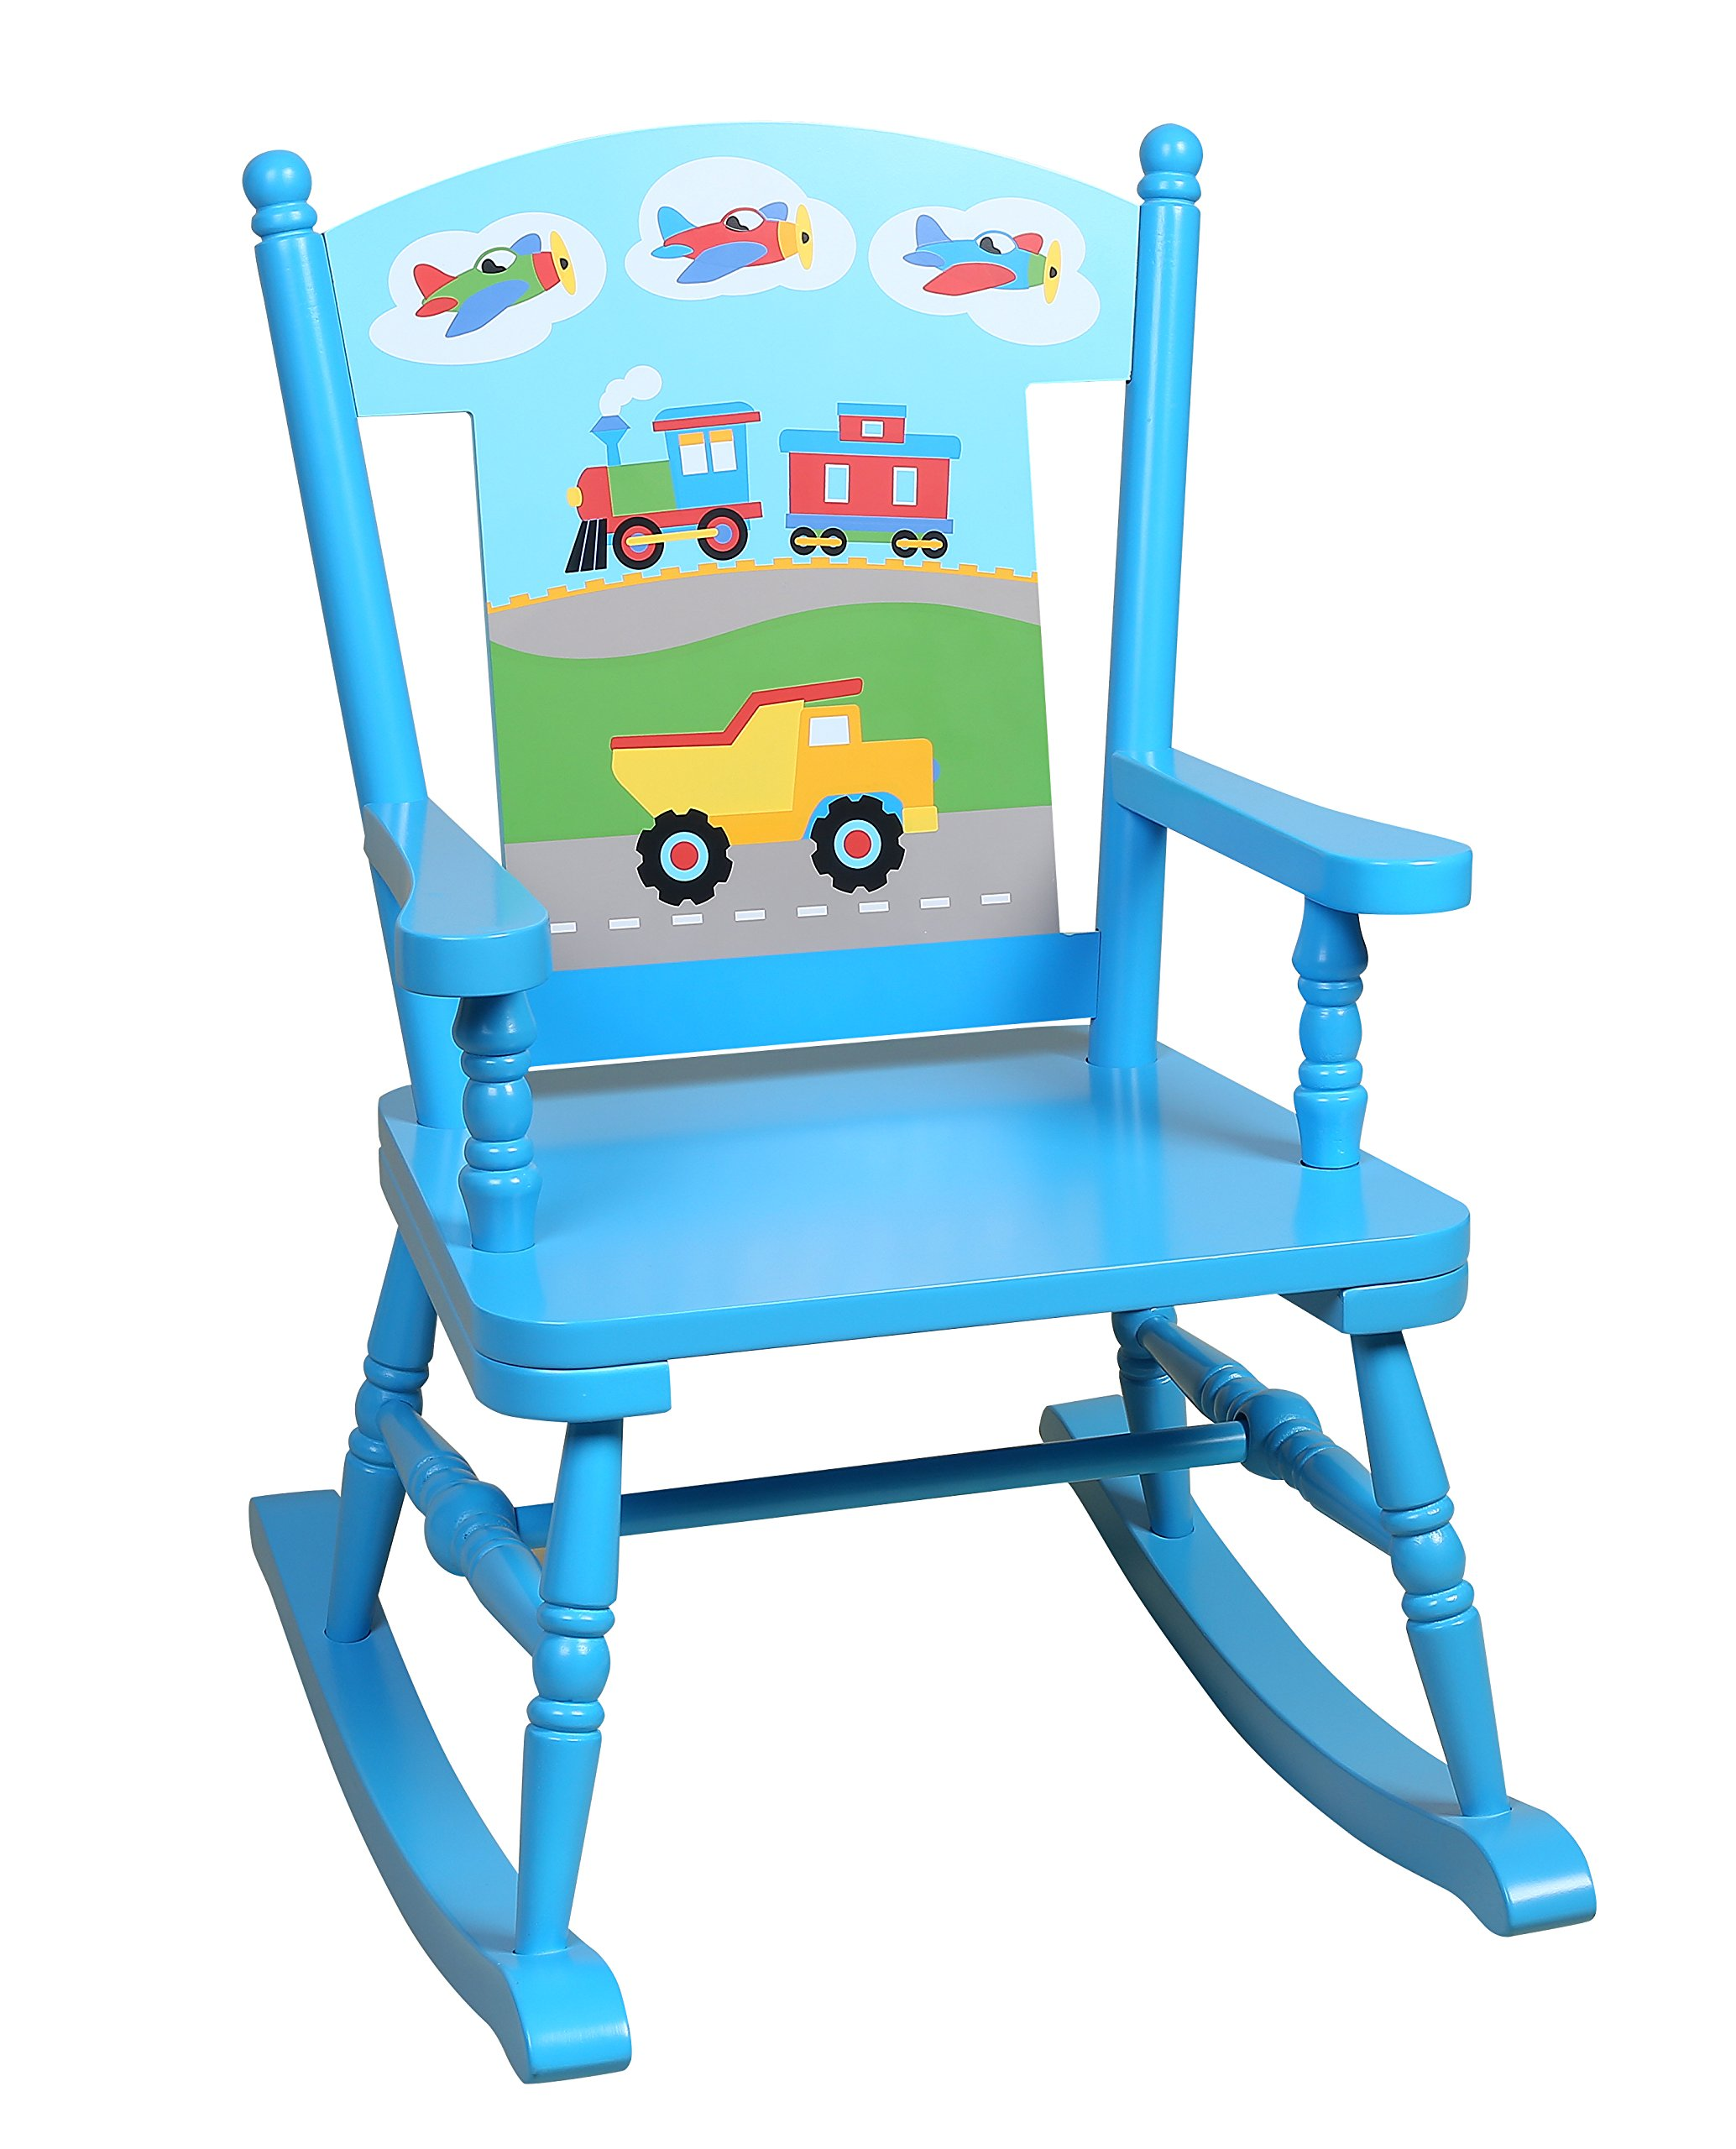 muebles zara table childs home espaa childrens argos lamparas chair toys us staggering child footstoola and capitona images impressive r y rocking kids chairs armchair butaca rocker